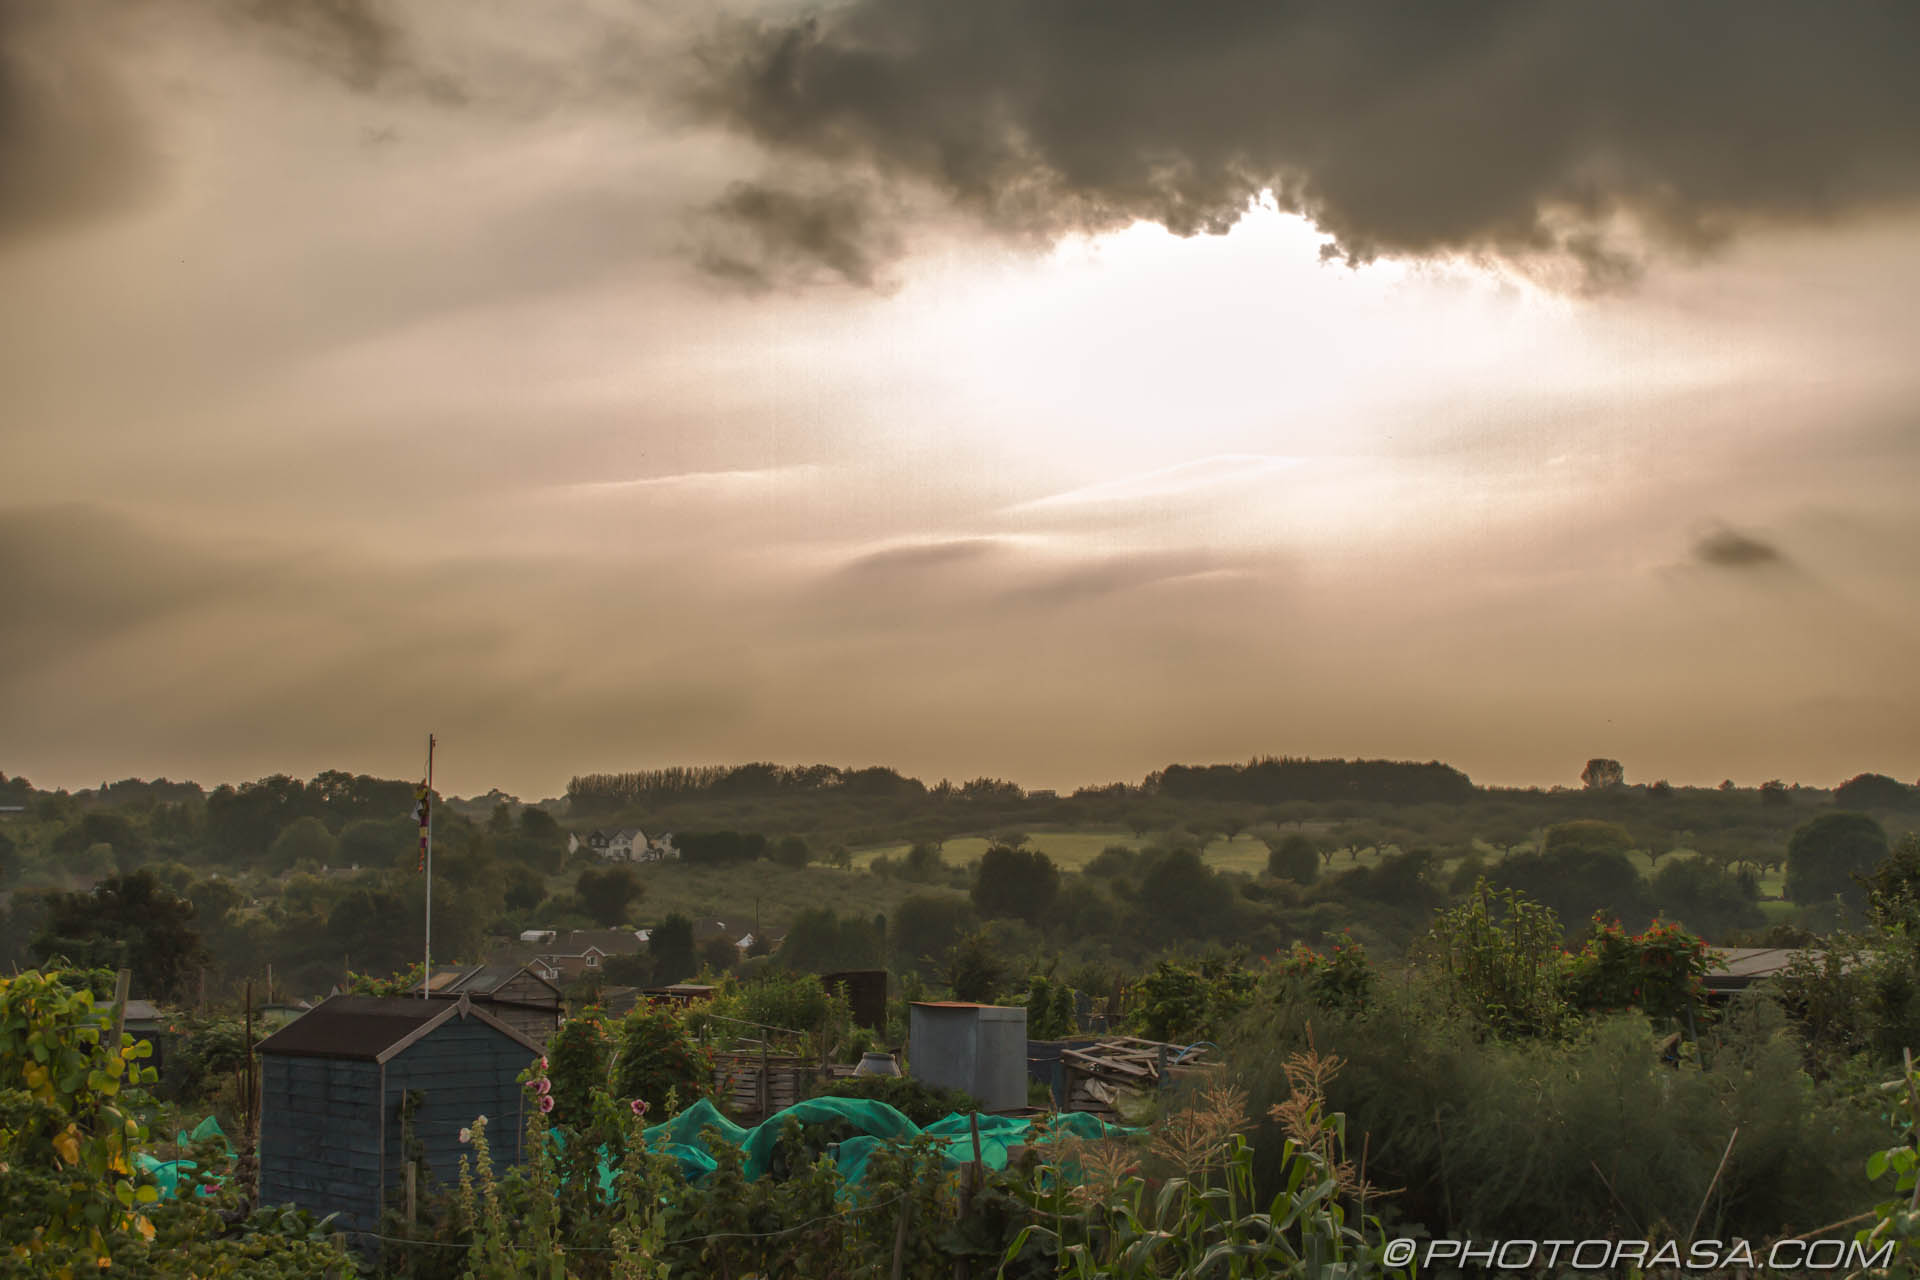 http://photorasa.com/sun-shining-through-the-clouds/hazy-sun-and-clouds-over-an-allotment/